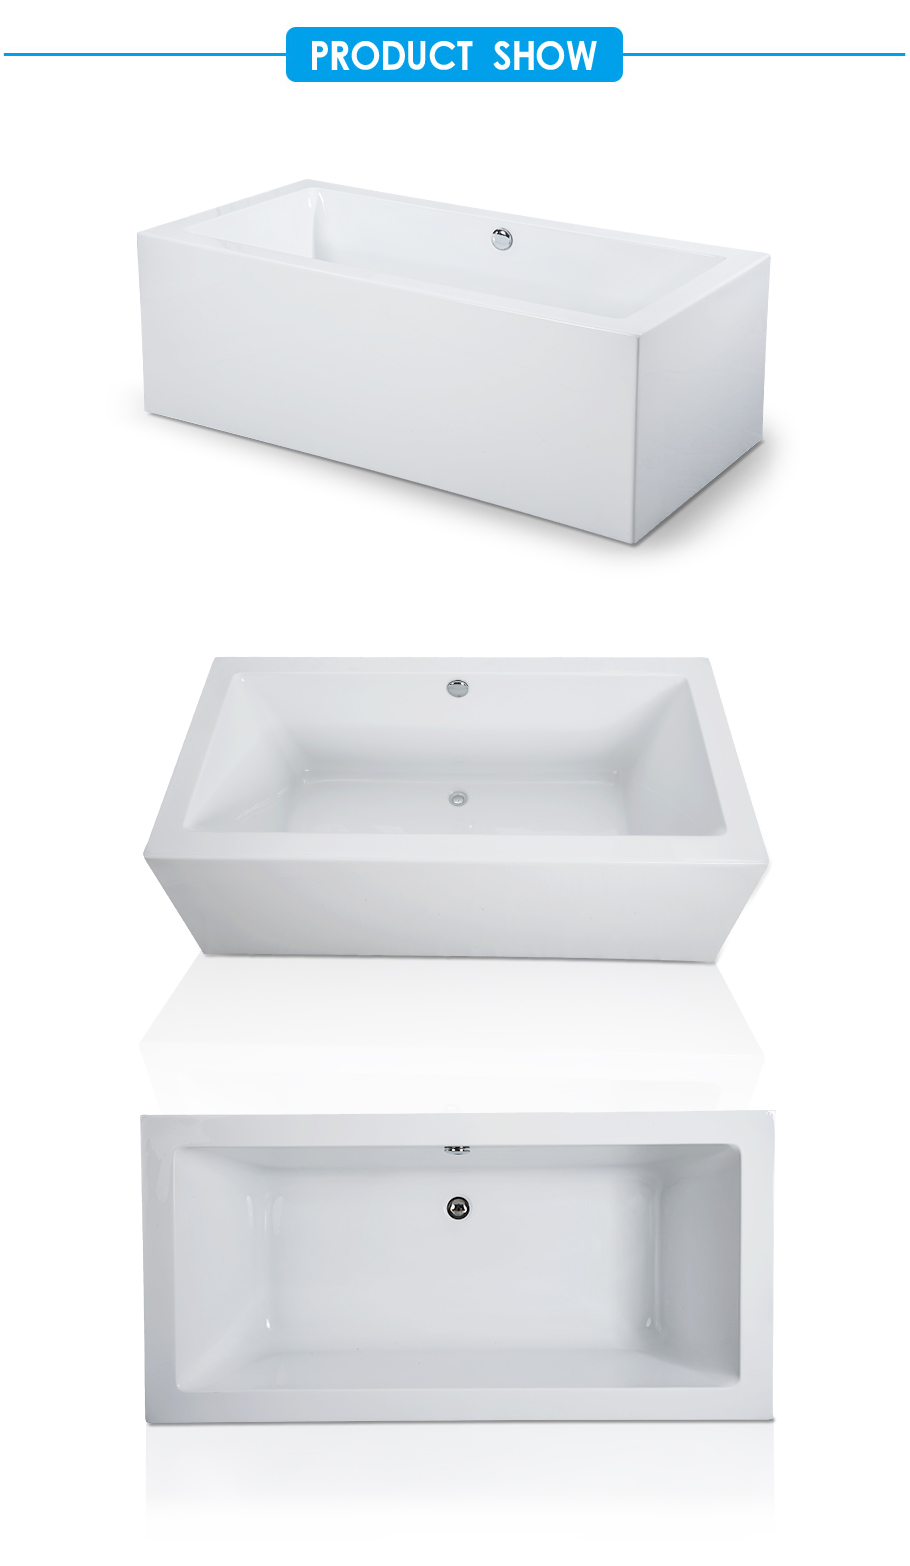 Melody Center Drain Soaking Tub in White